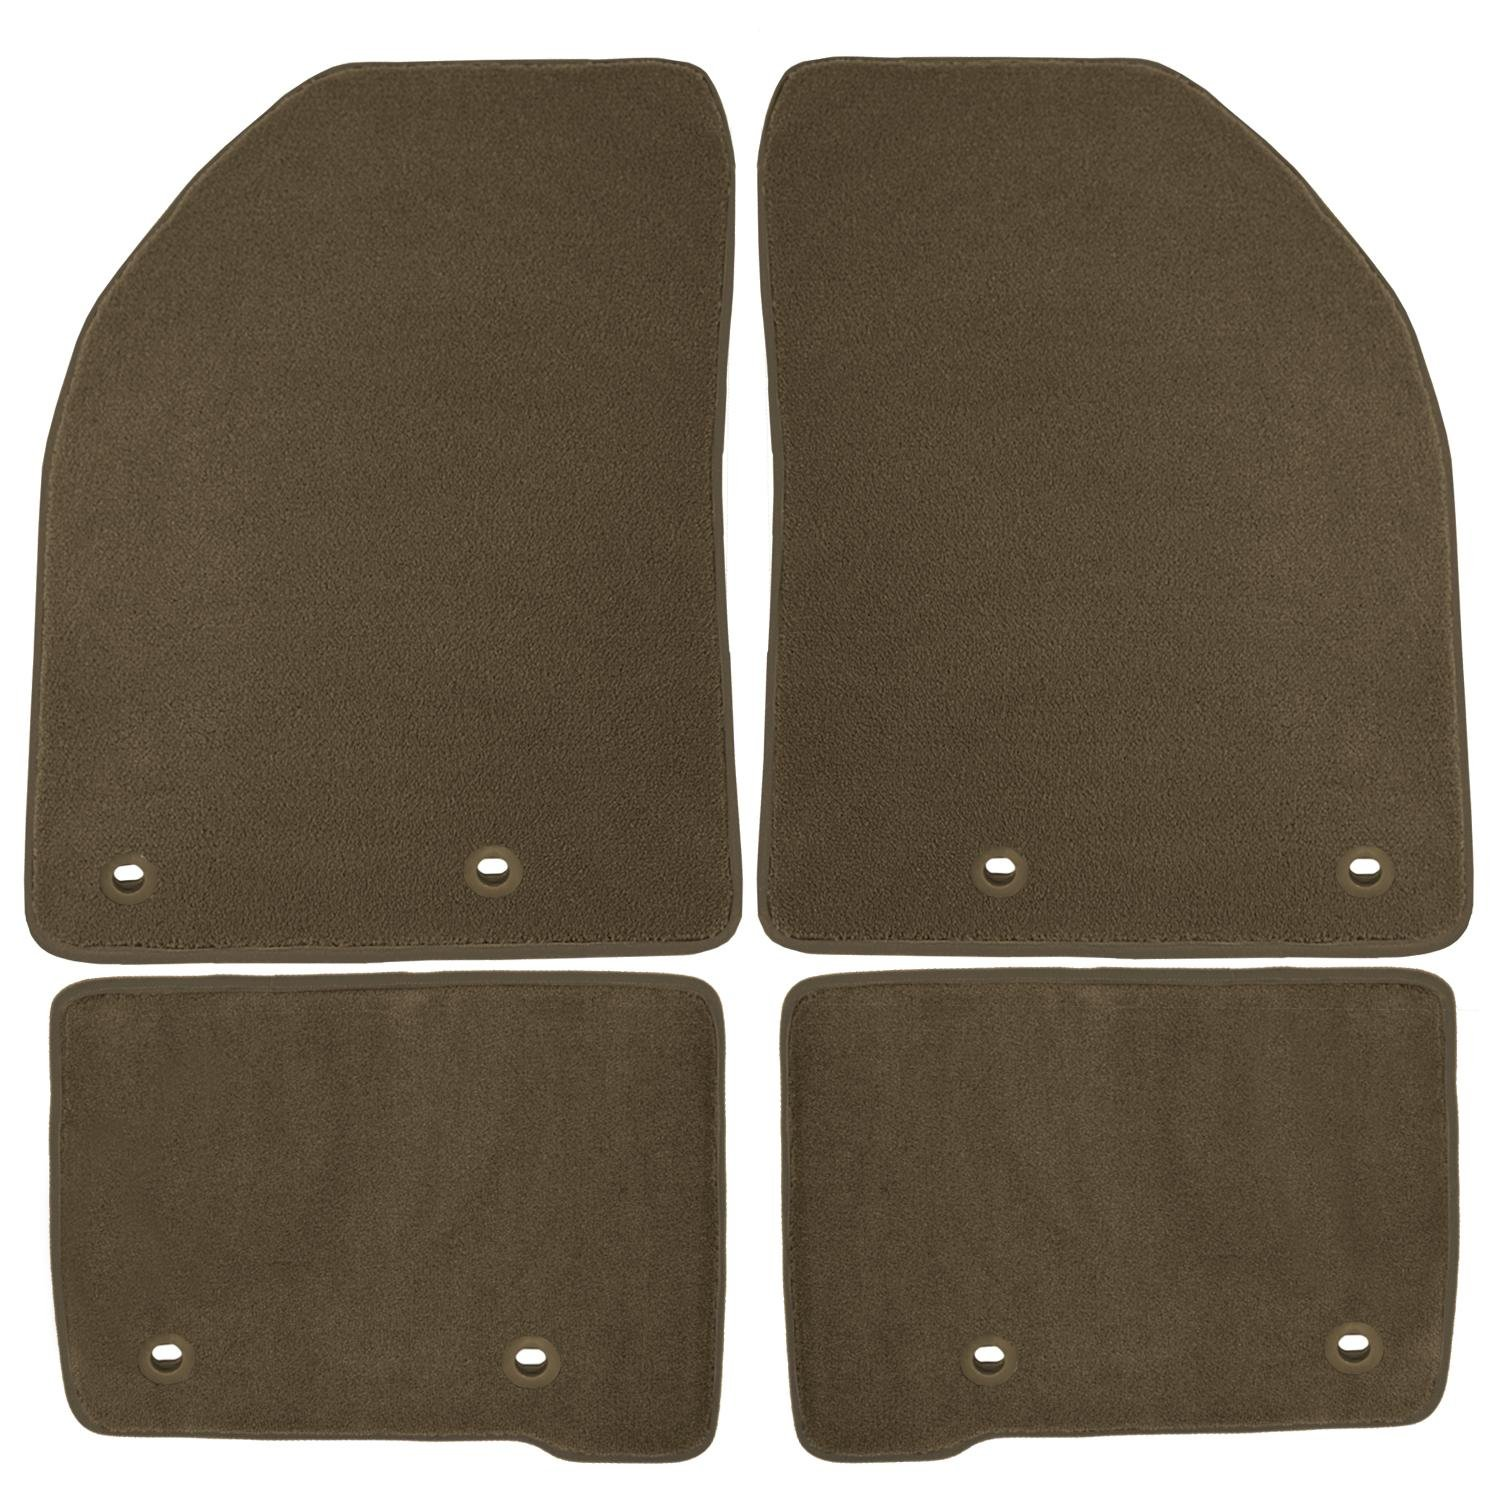 Black Nylon Carpet Coverking Custom Fit Front Floor Mats for Select Nissan Sentra Models